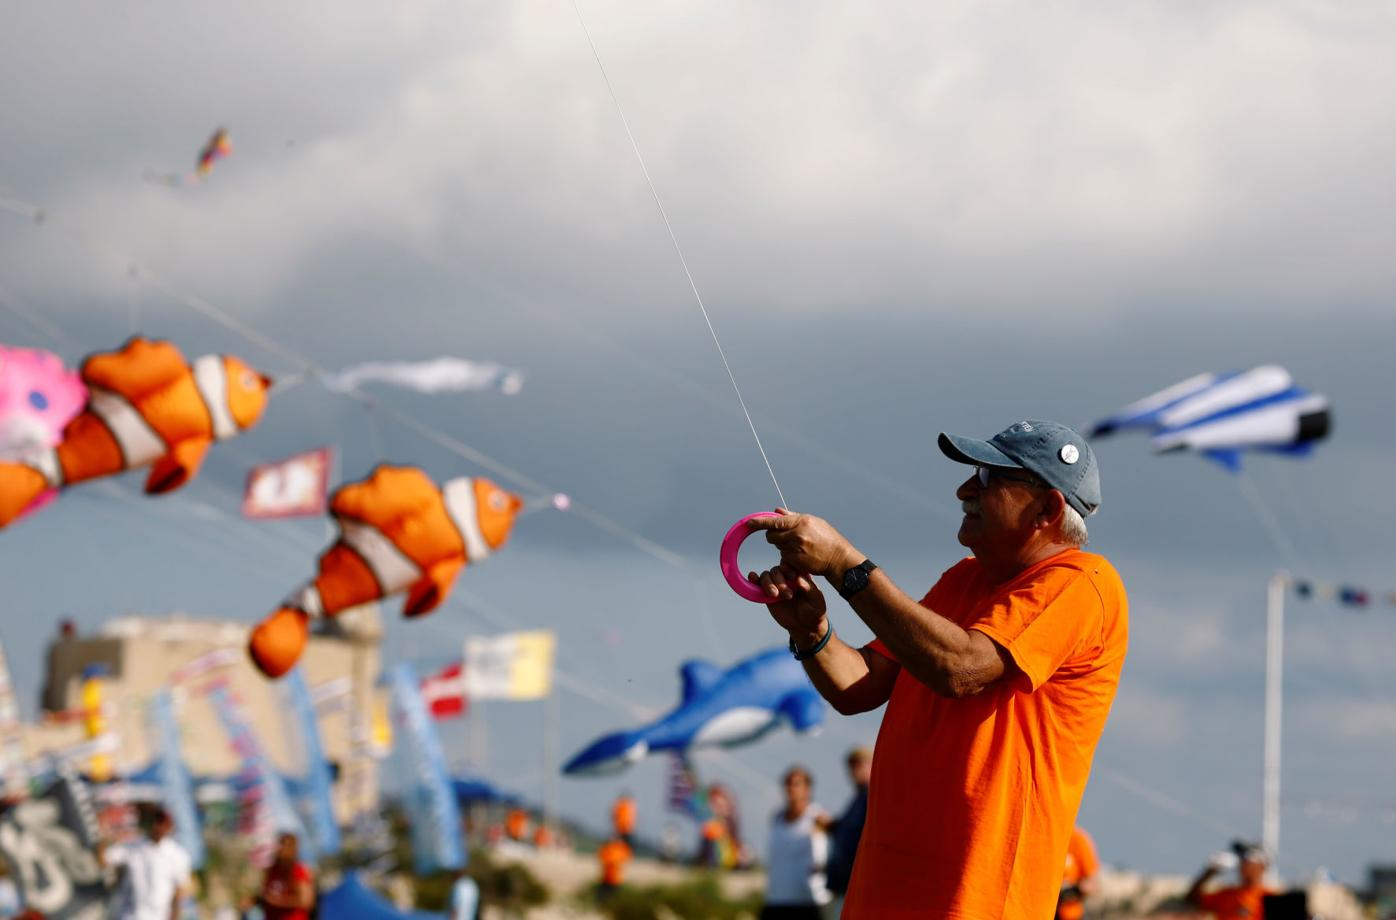 An enthusiast flies a kite during the International Kite and Wind festival outside the village of Gharb, on the island of Gozo | Human Interest | unionleader.com